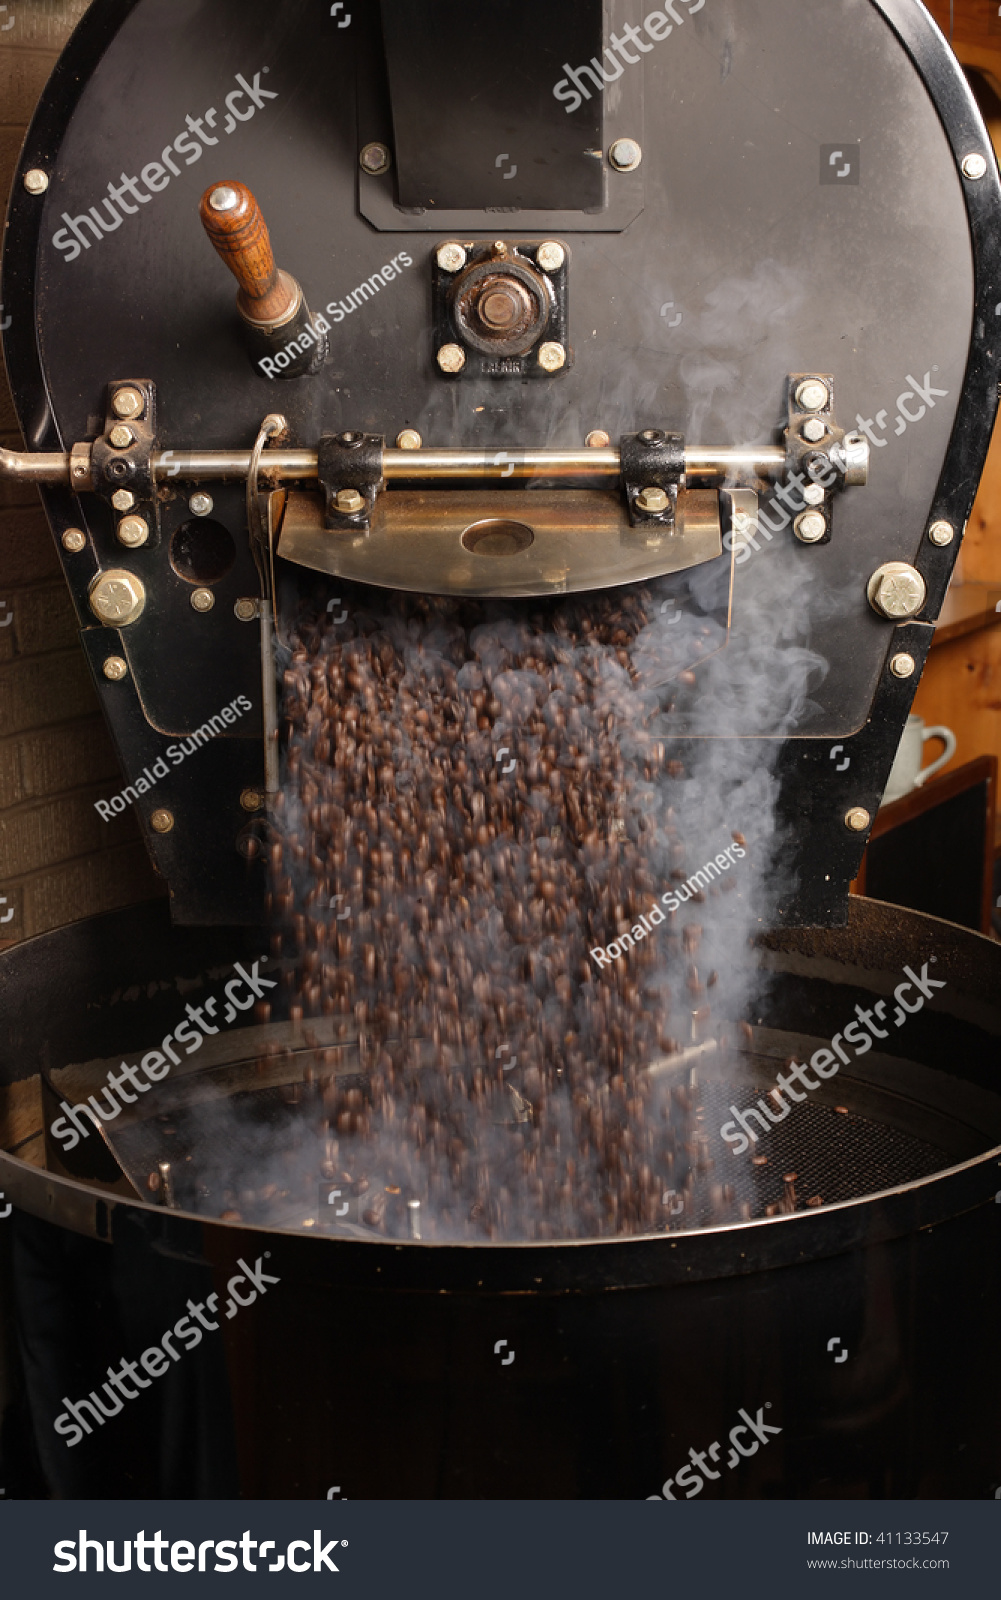 The freshly roasted coffee beans from a large coffee roaster being poured into the cooling cylinder.  Motion blur on the beans. #41133547